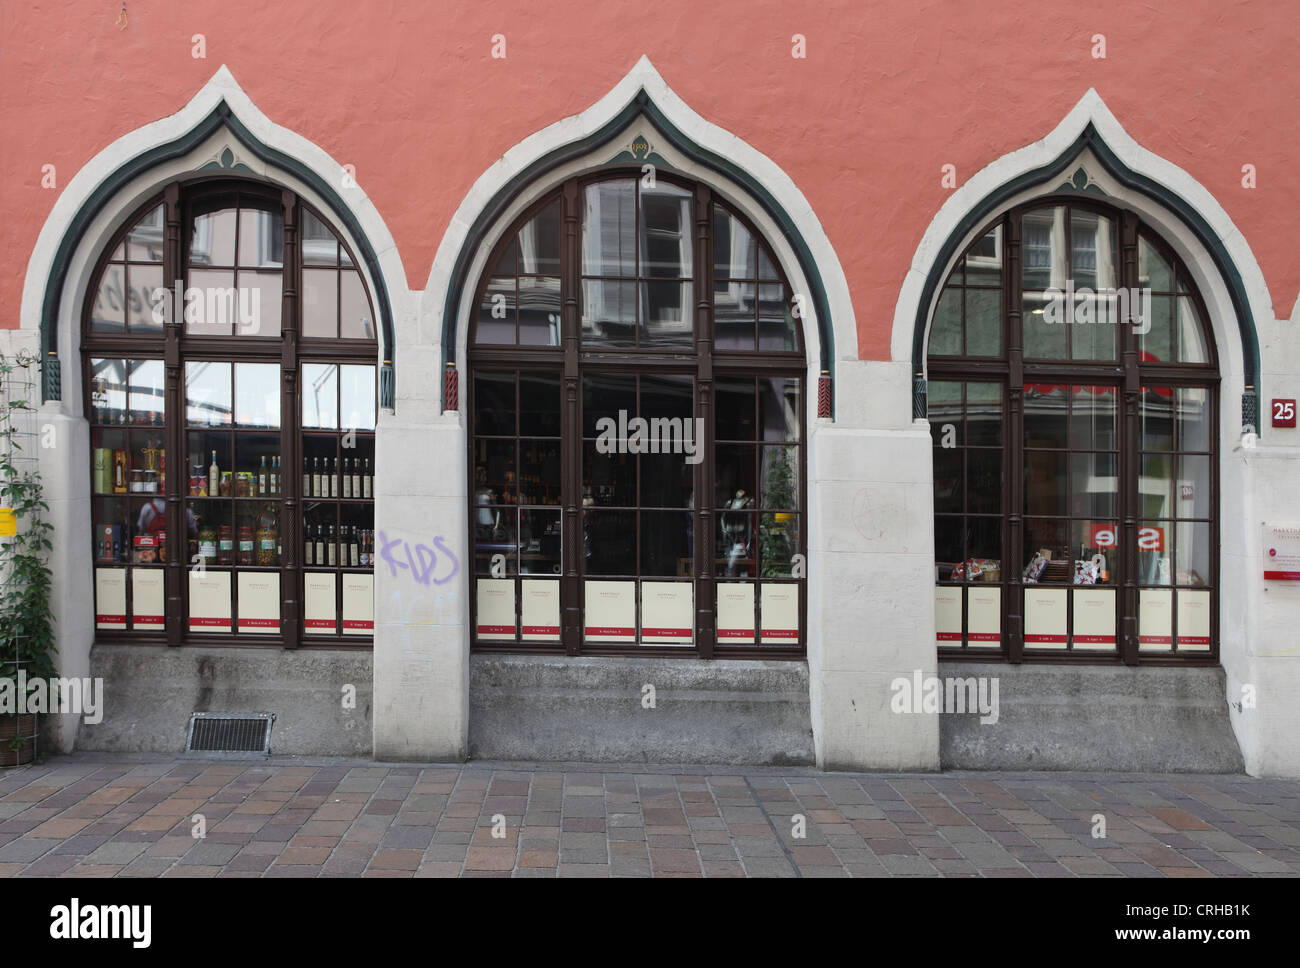 Markthalle, Winterthur, once the Scale shop where all goods were weighed - Stock Image